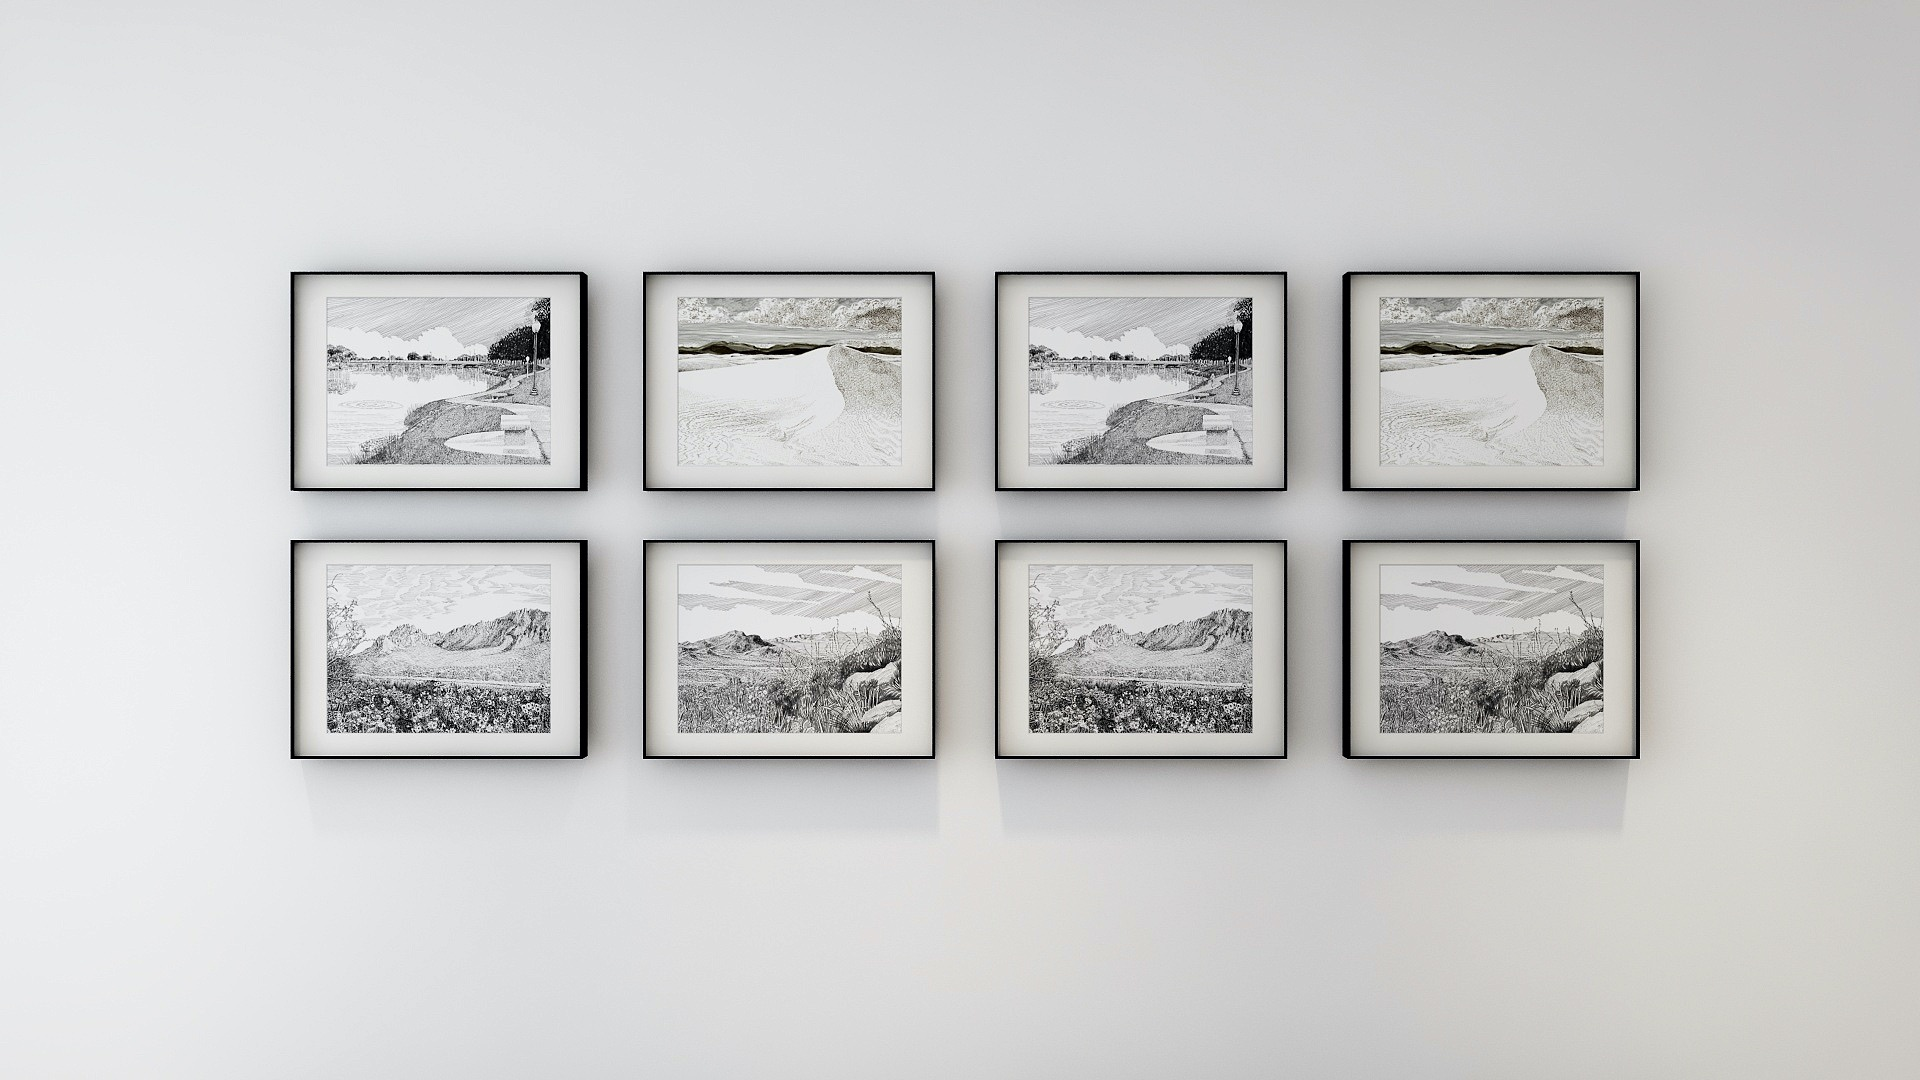 Framed minimalist art acts as accent in Contemporary style